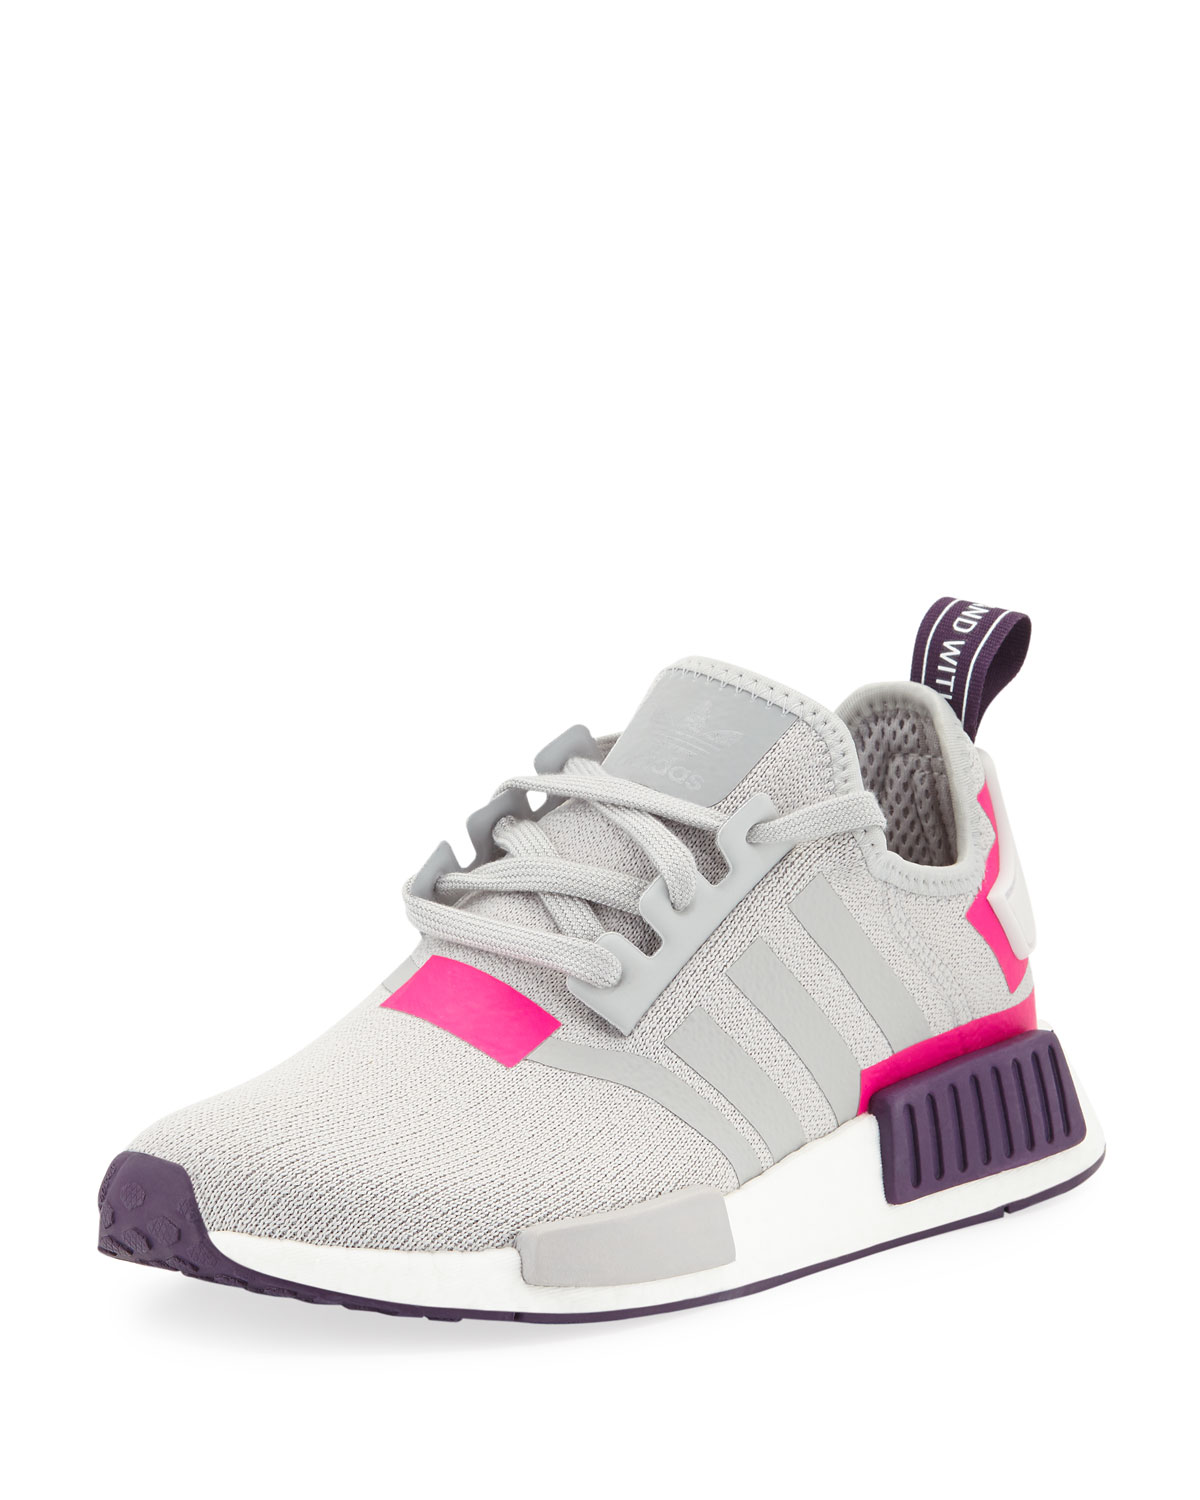 new arrival 1d305 a9109 AdidasNMD R1 Knit Running Sneakers